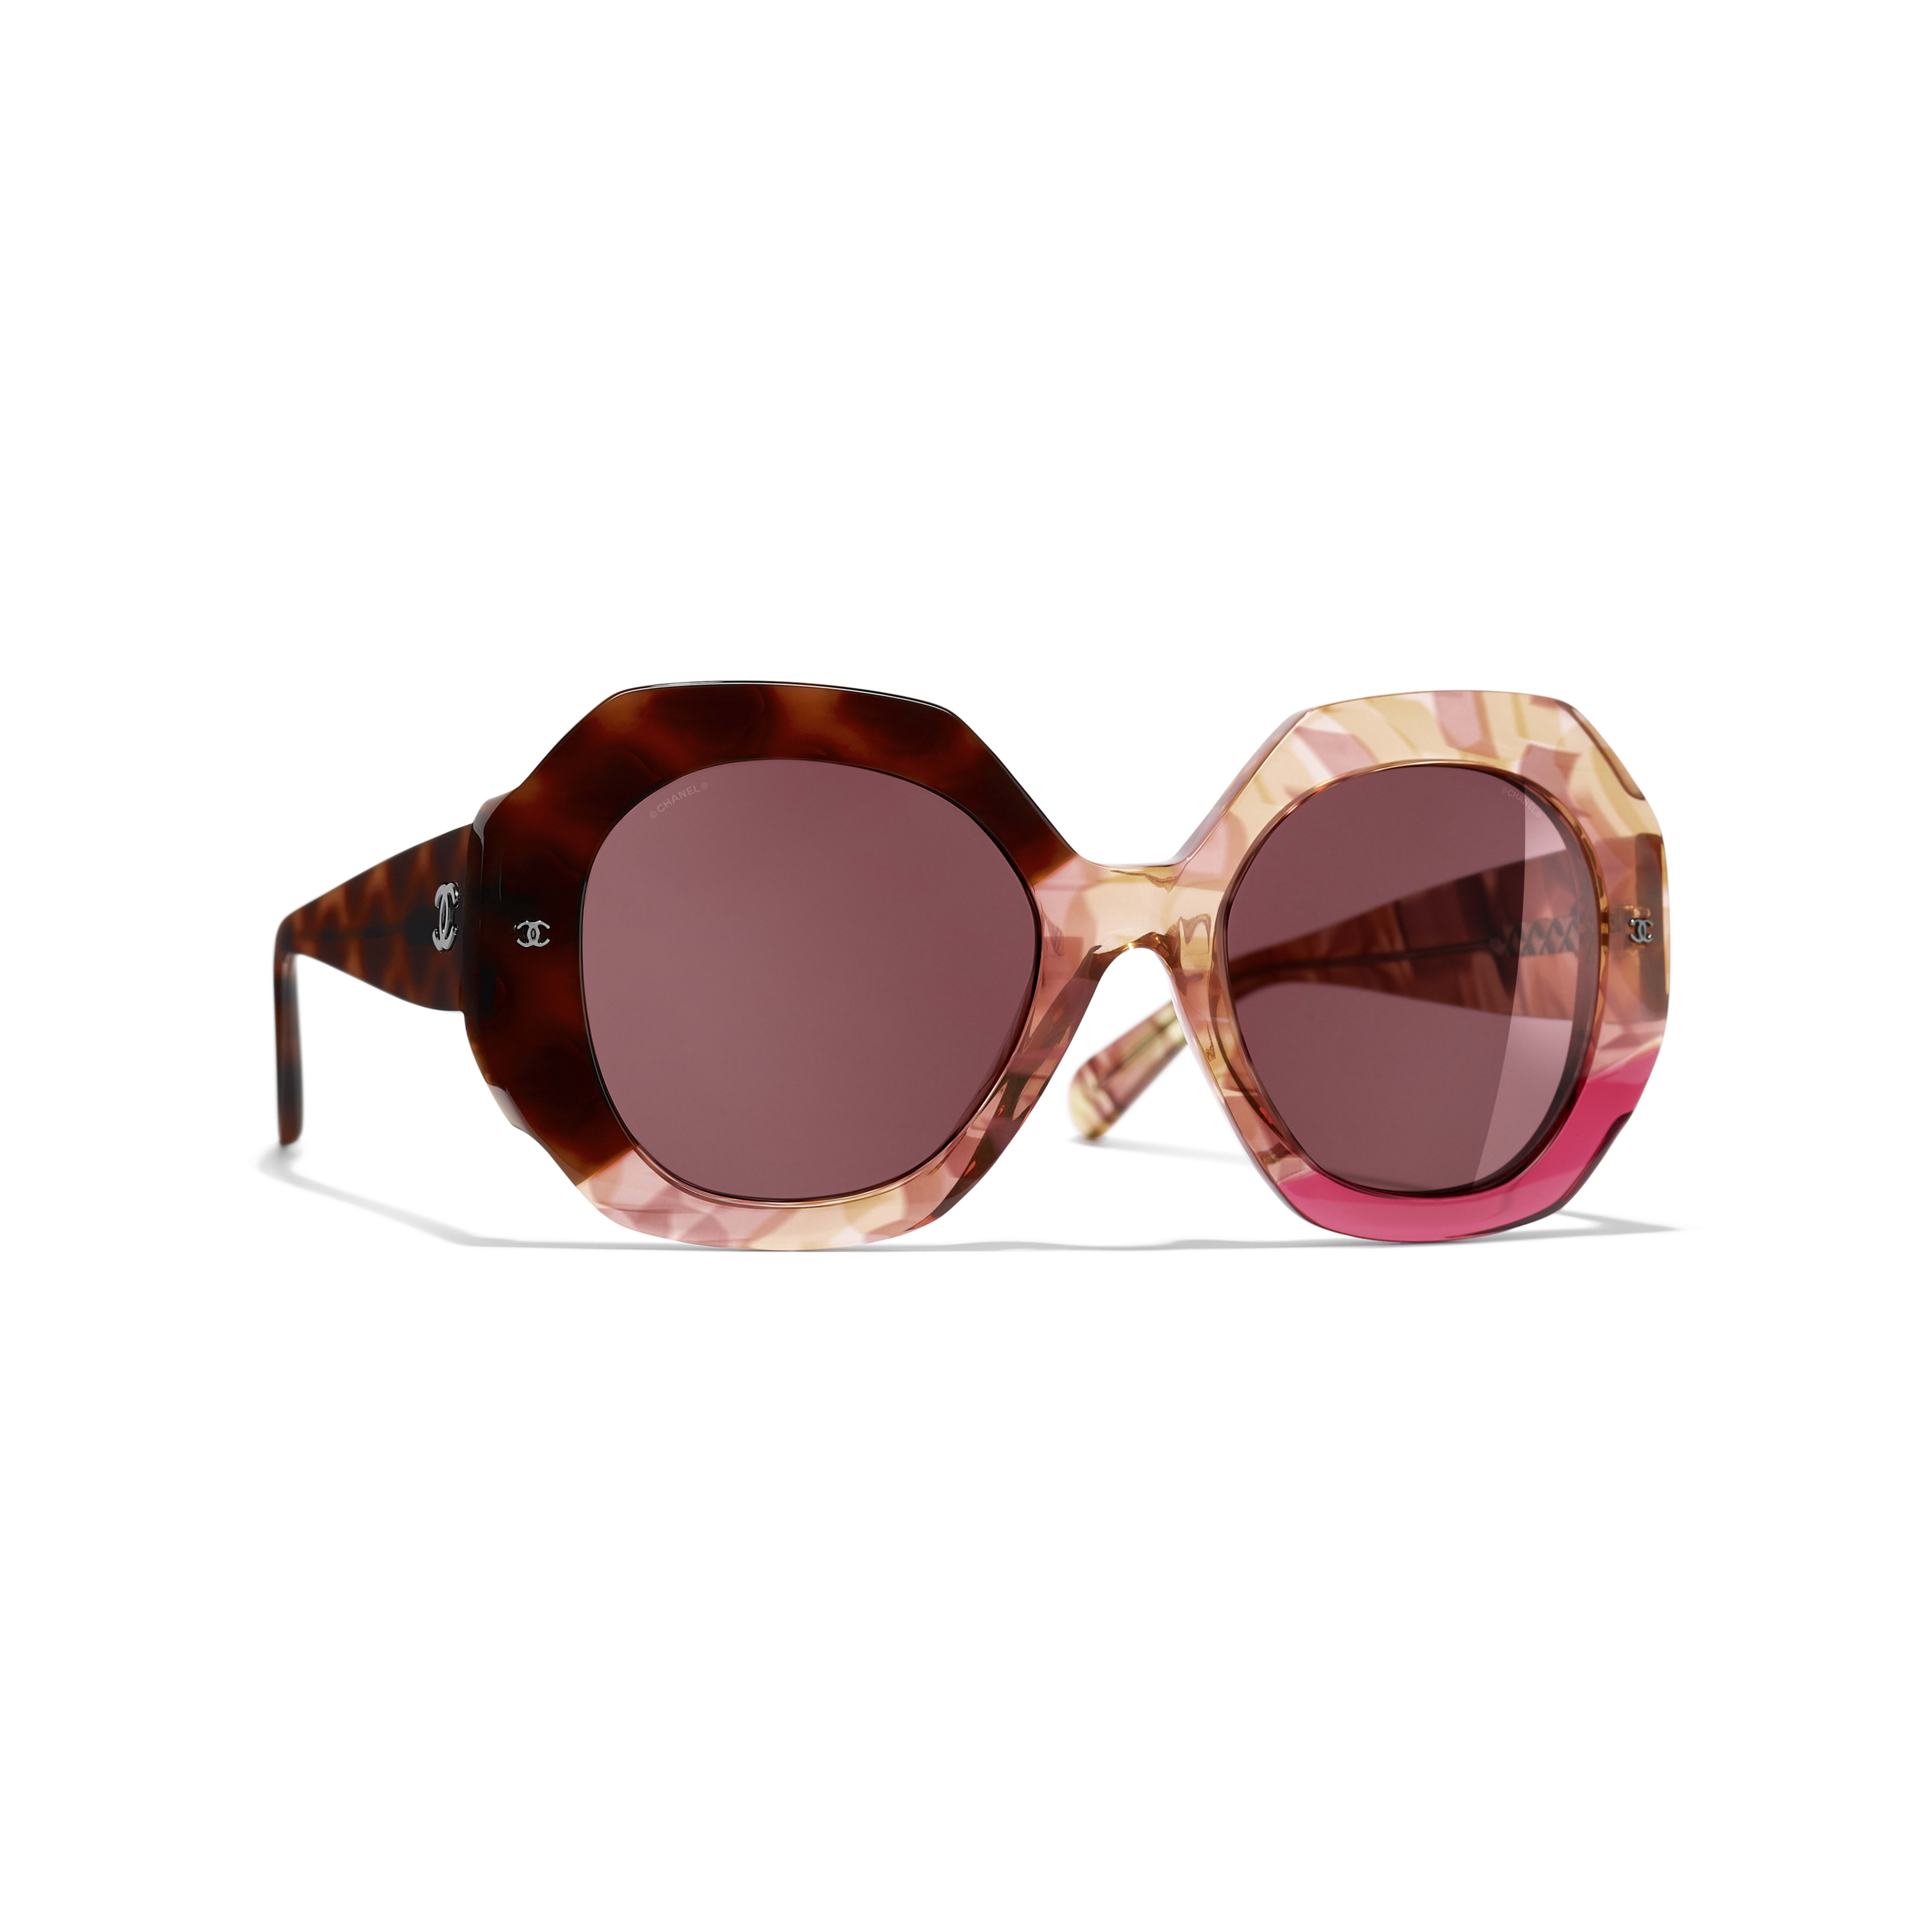 Round Sunglasses - Dark Tortoise & Pink - Acetate - CHANEL - Default view - see standard sized version